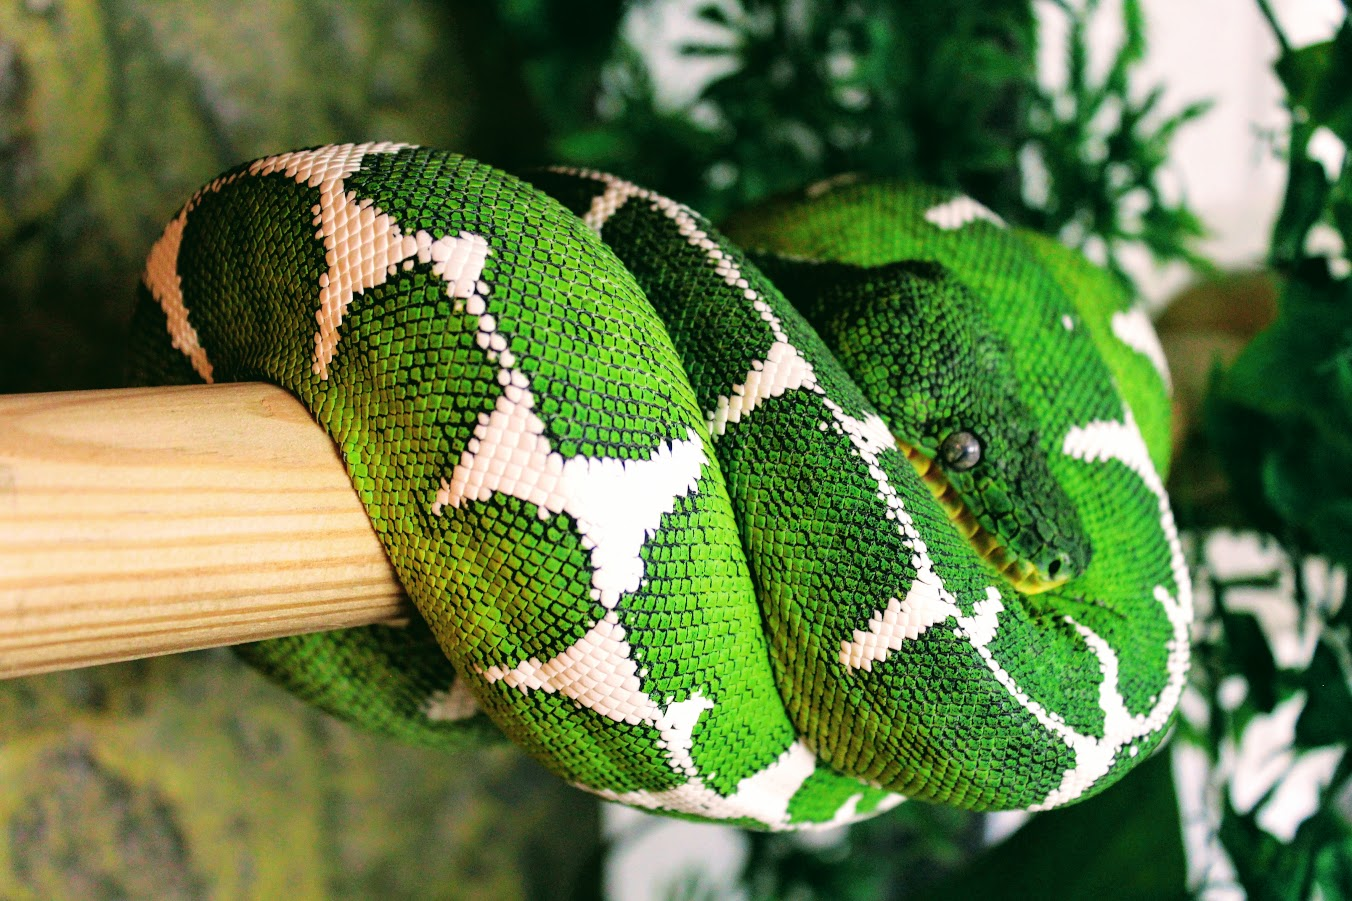 Pictured is a mature female Amazon Basin Emerald Tree Boa.